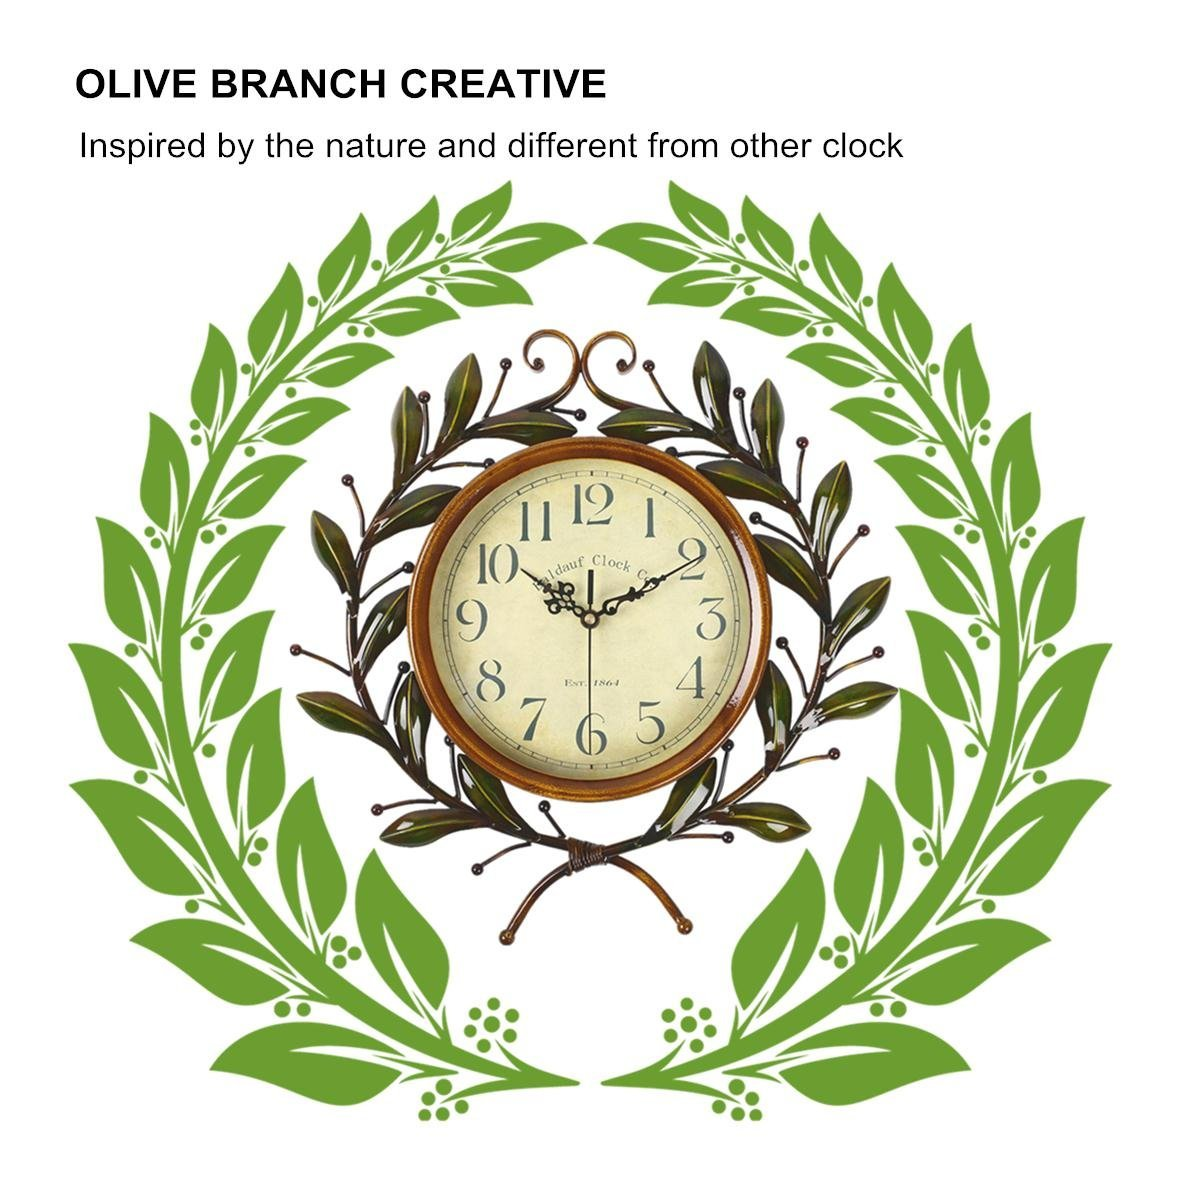 Soledi Vintage Wall Clock Classic Silent Non-ticking For Home Decoration Olive Branch Design 4